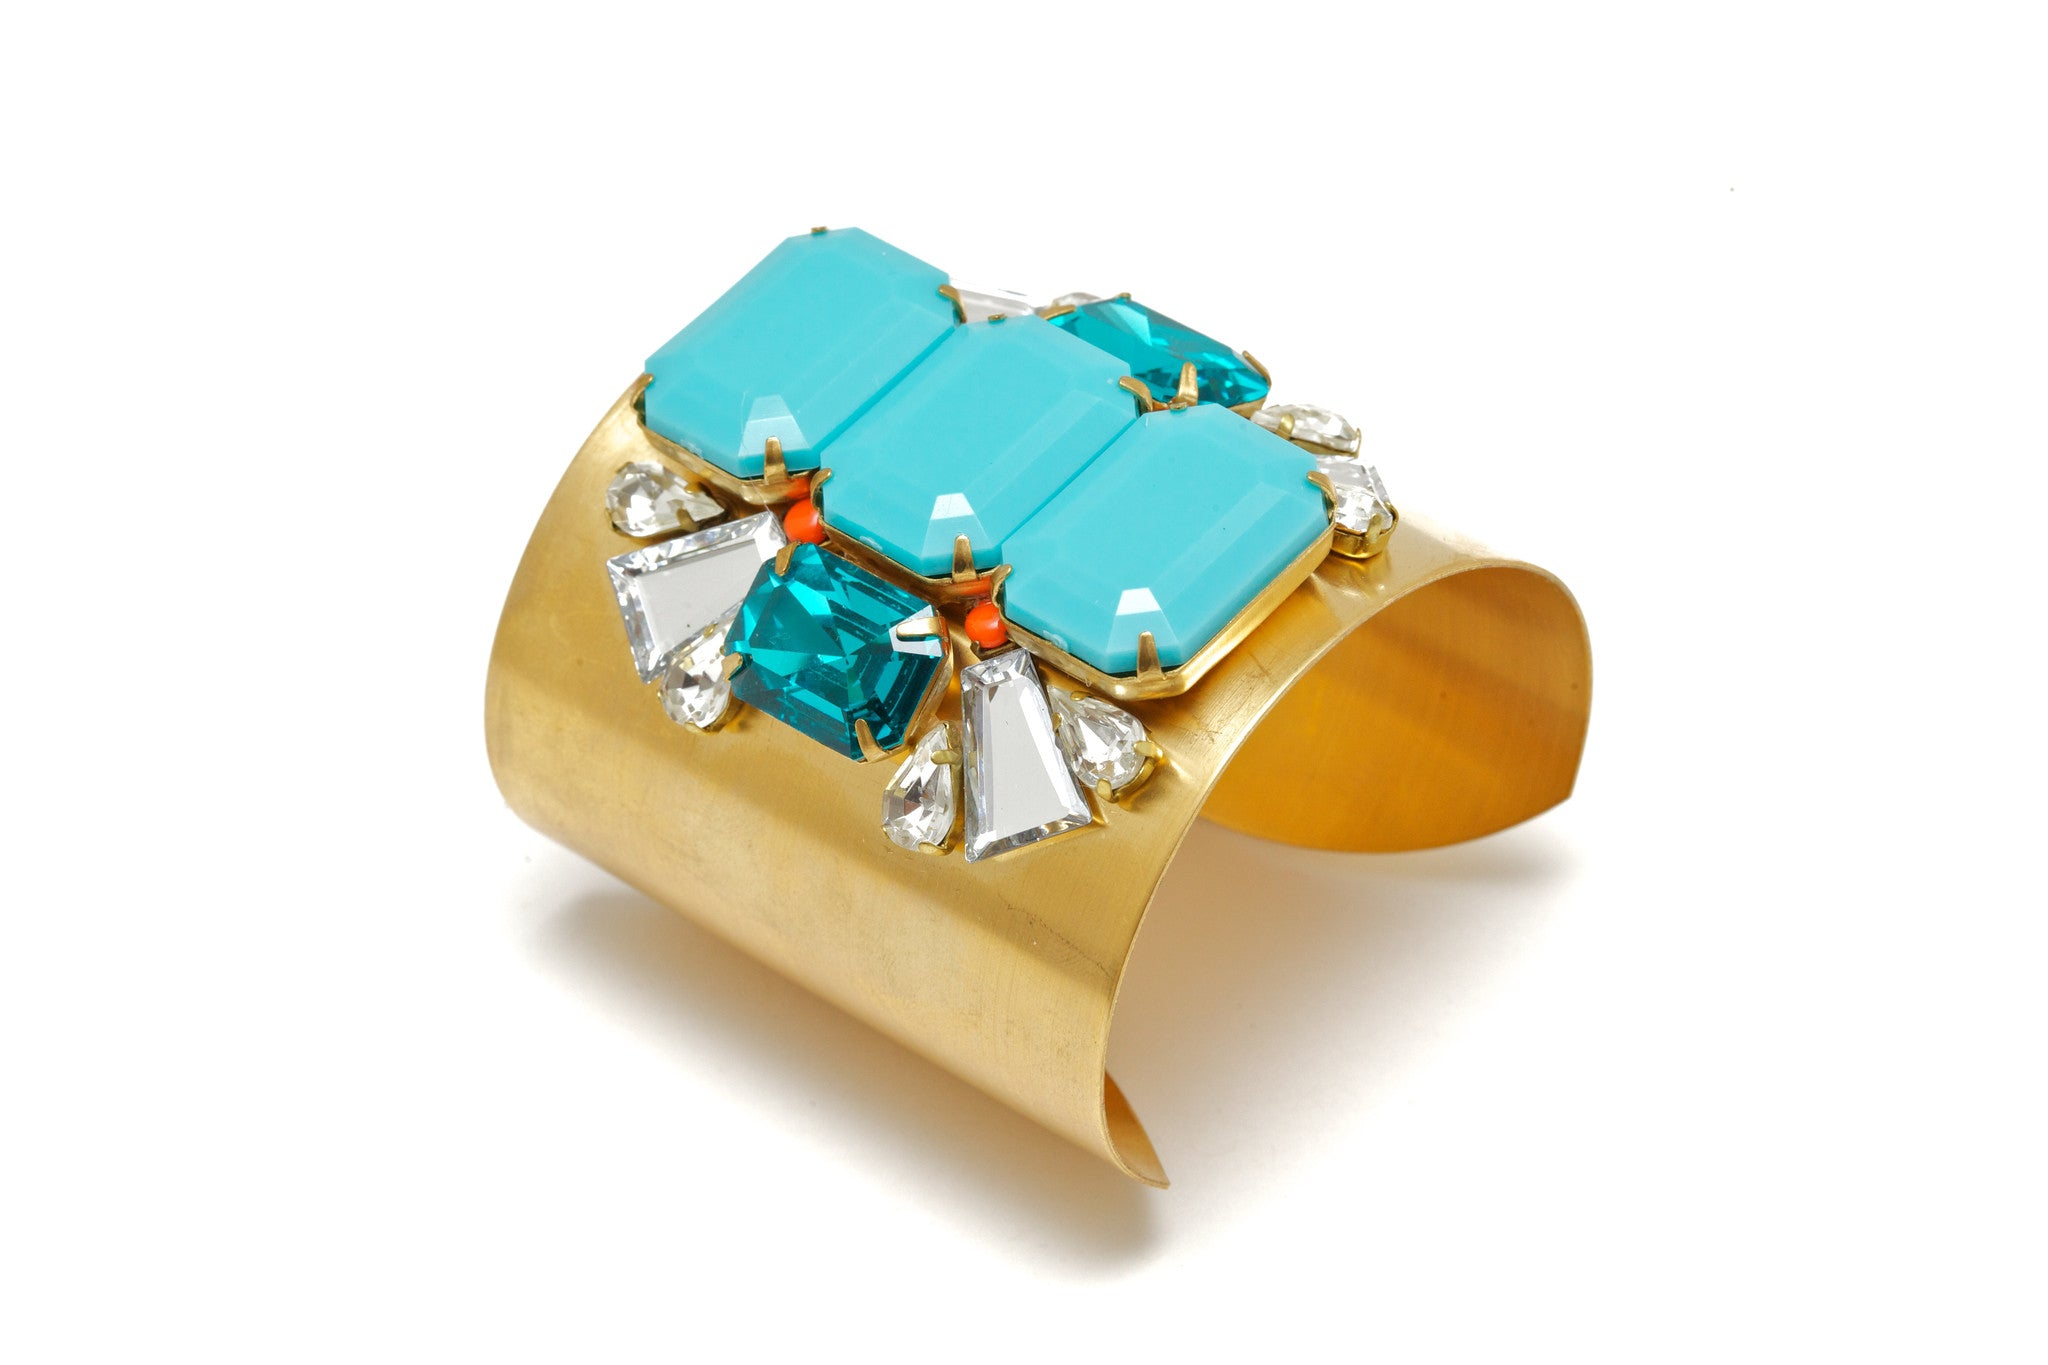 Gold and Turquoise jeweled cuff